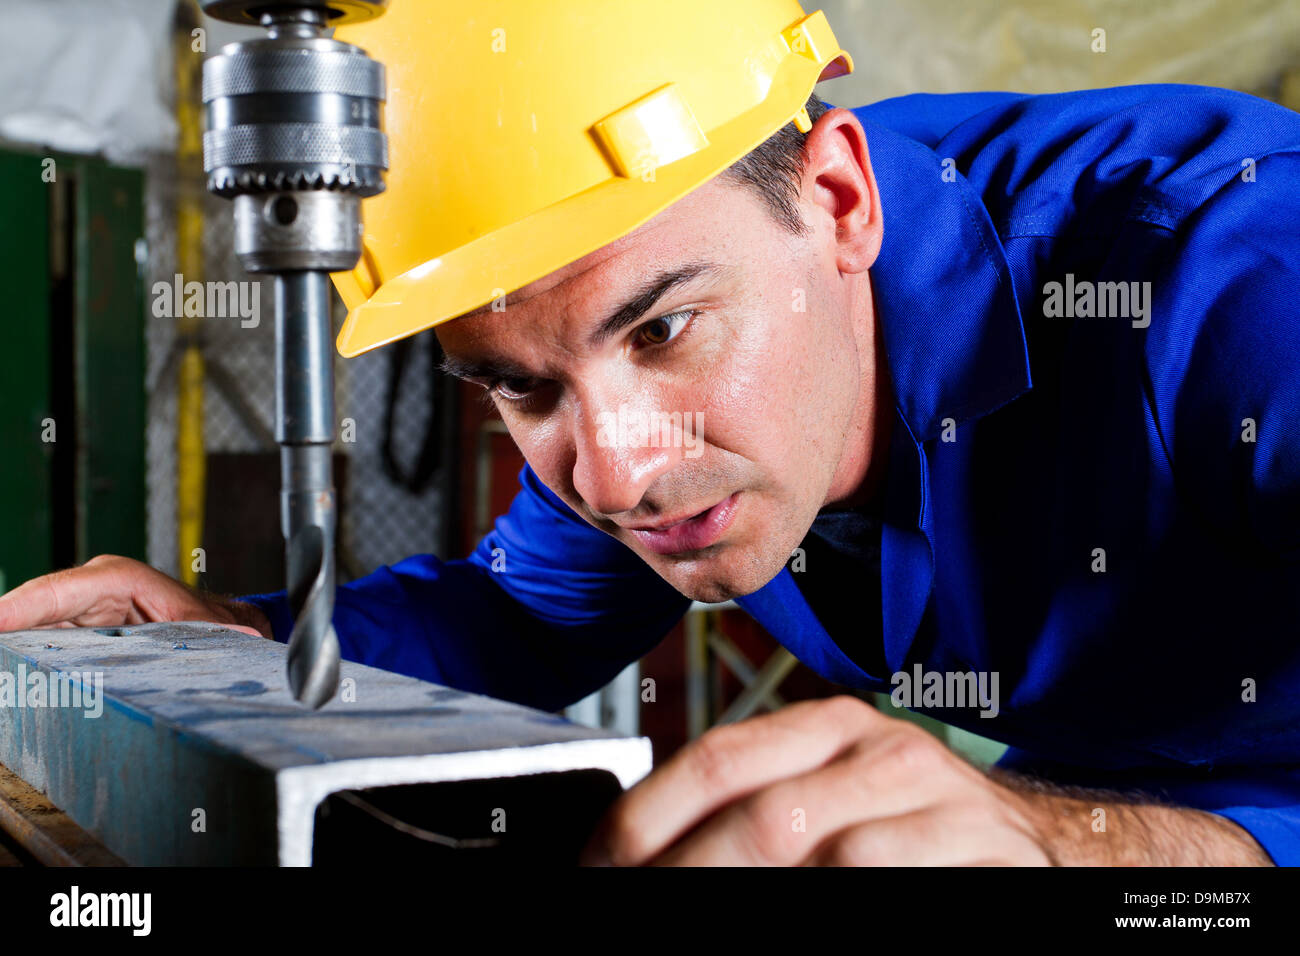 male metal worker using drillpress - Stock Image